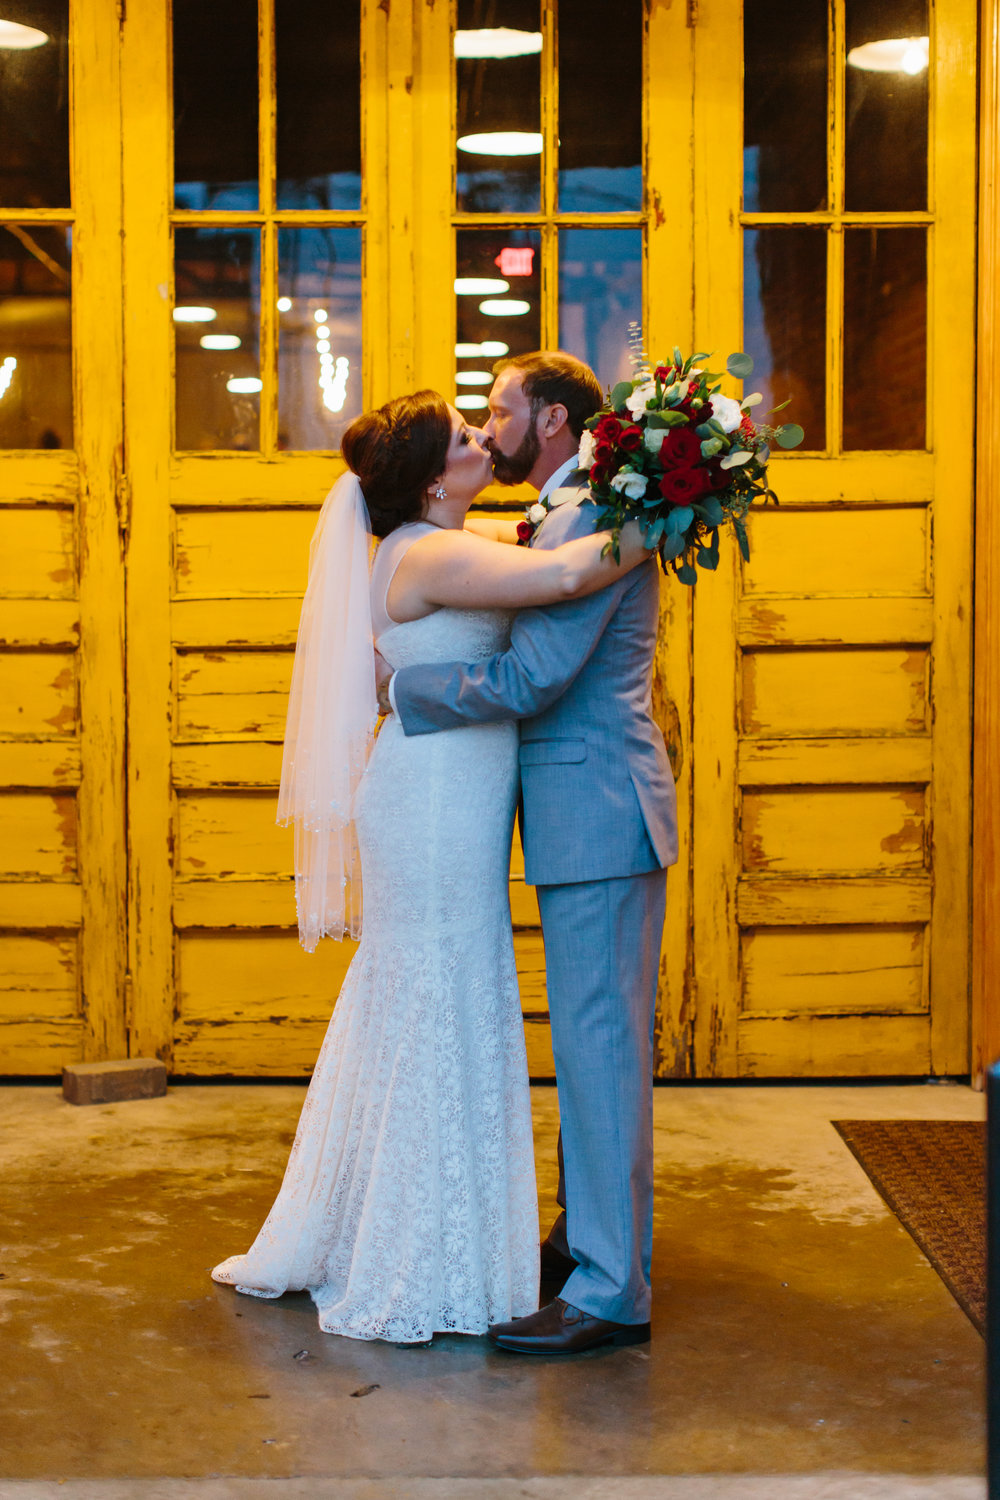 Jessica_Bryan_Wedding_Standard_Knoxville_Abigail_Malone_Photography-583.jpg